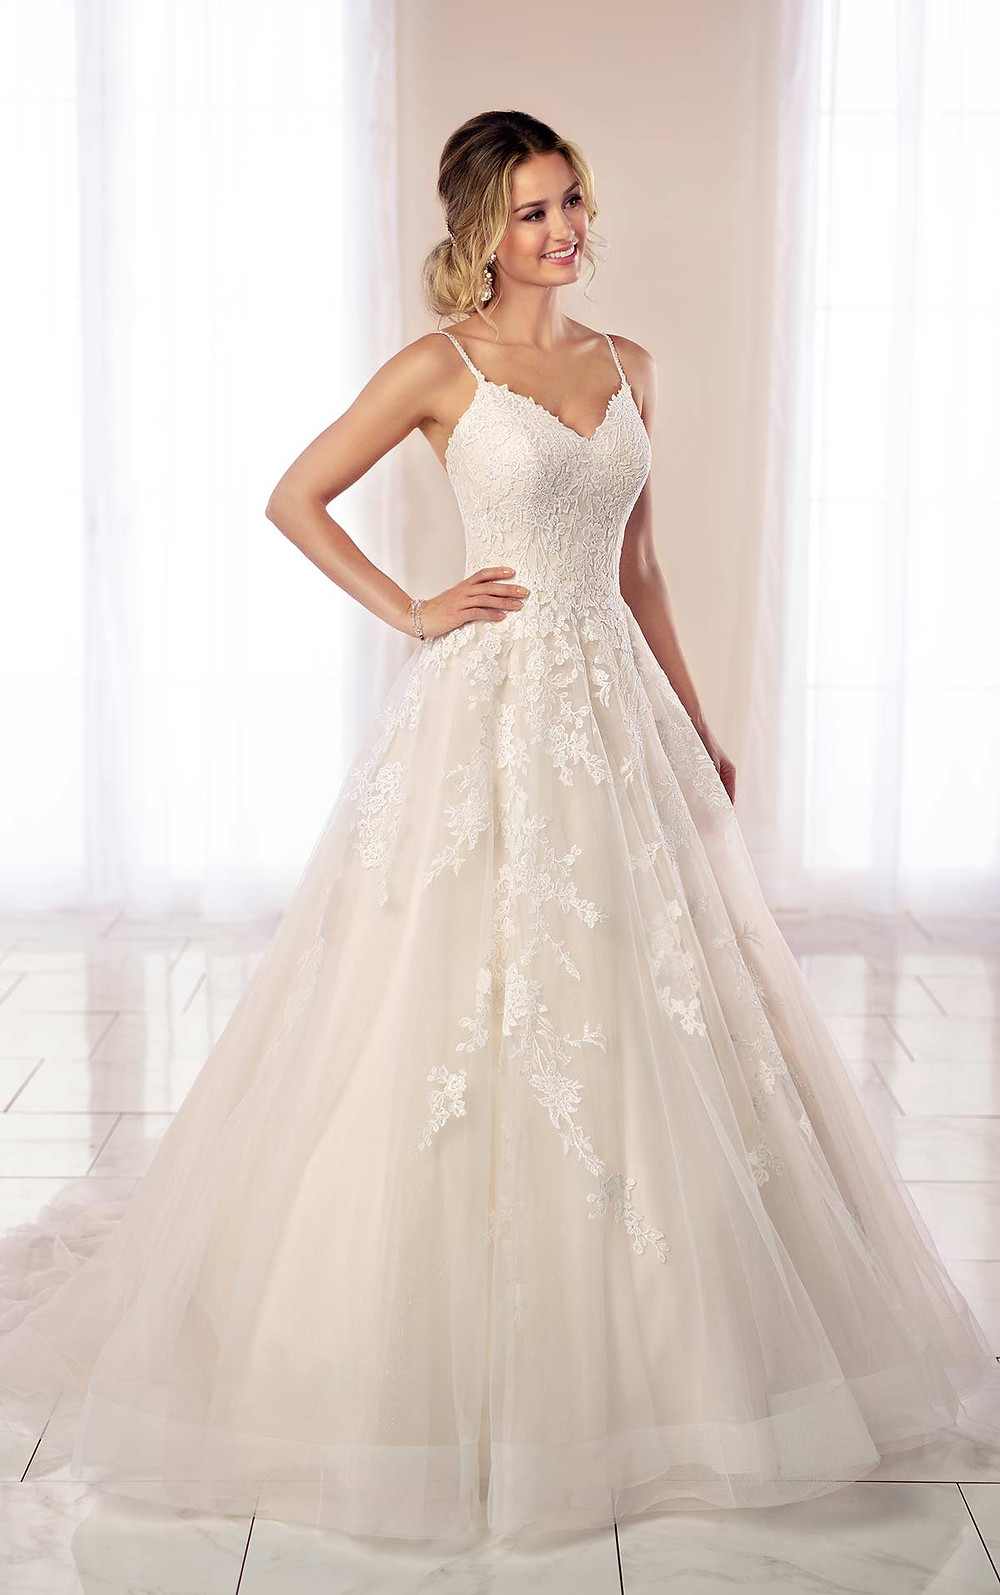 A Stella York 2020 lace and mesh princess ball gown wedding dress with straps